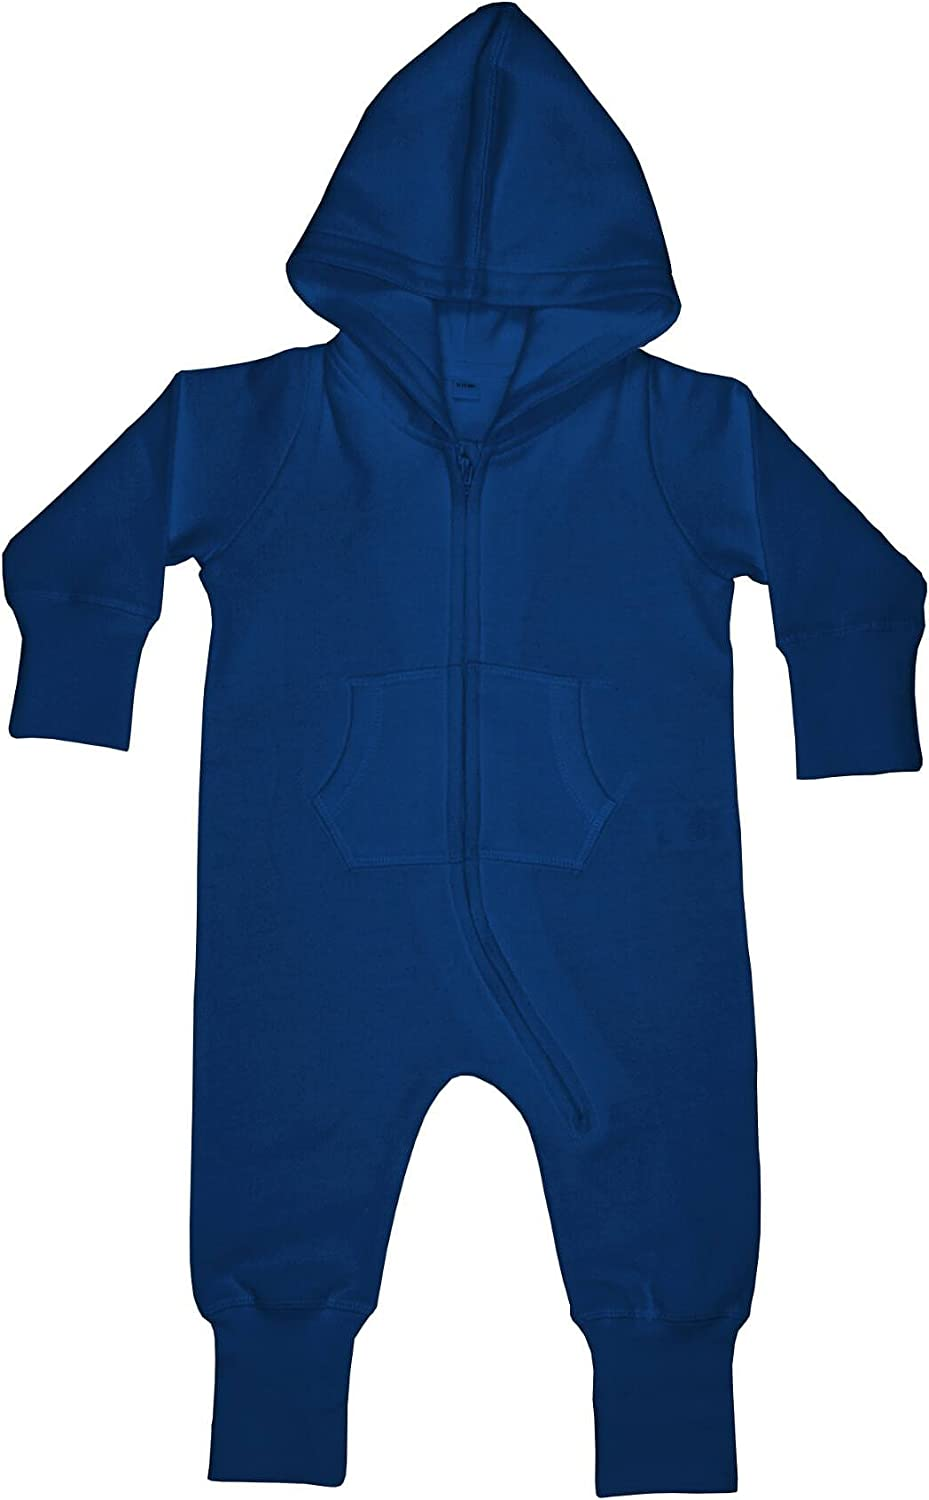 BABYBUGZ Hooded Baby and Toddler All in One